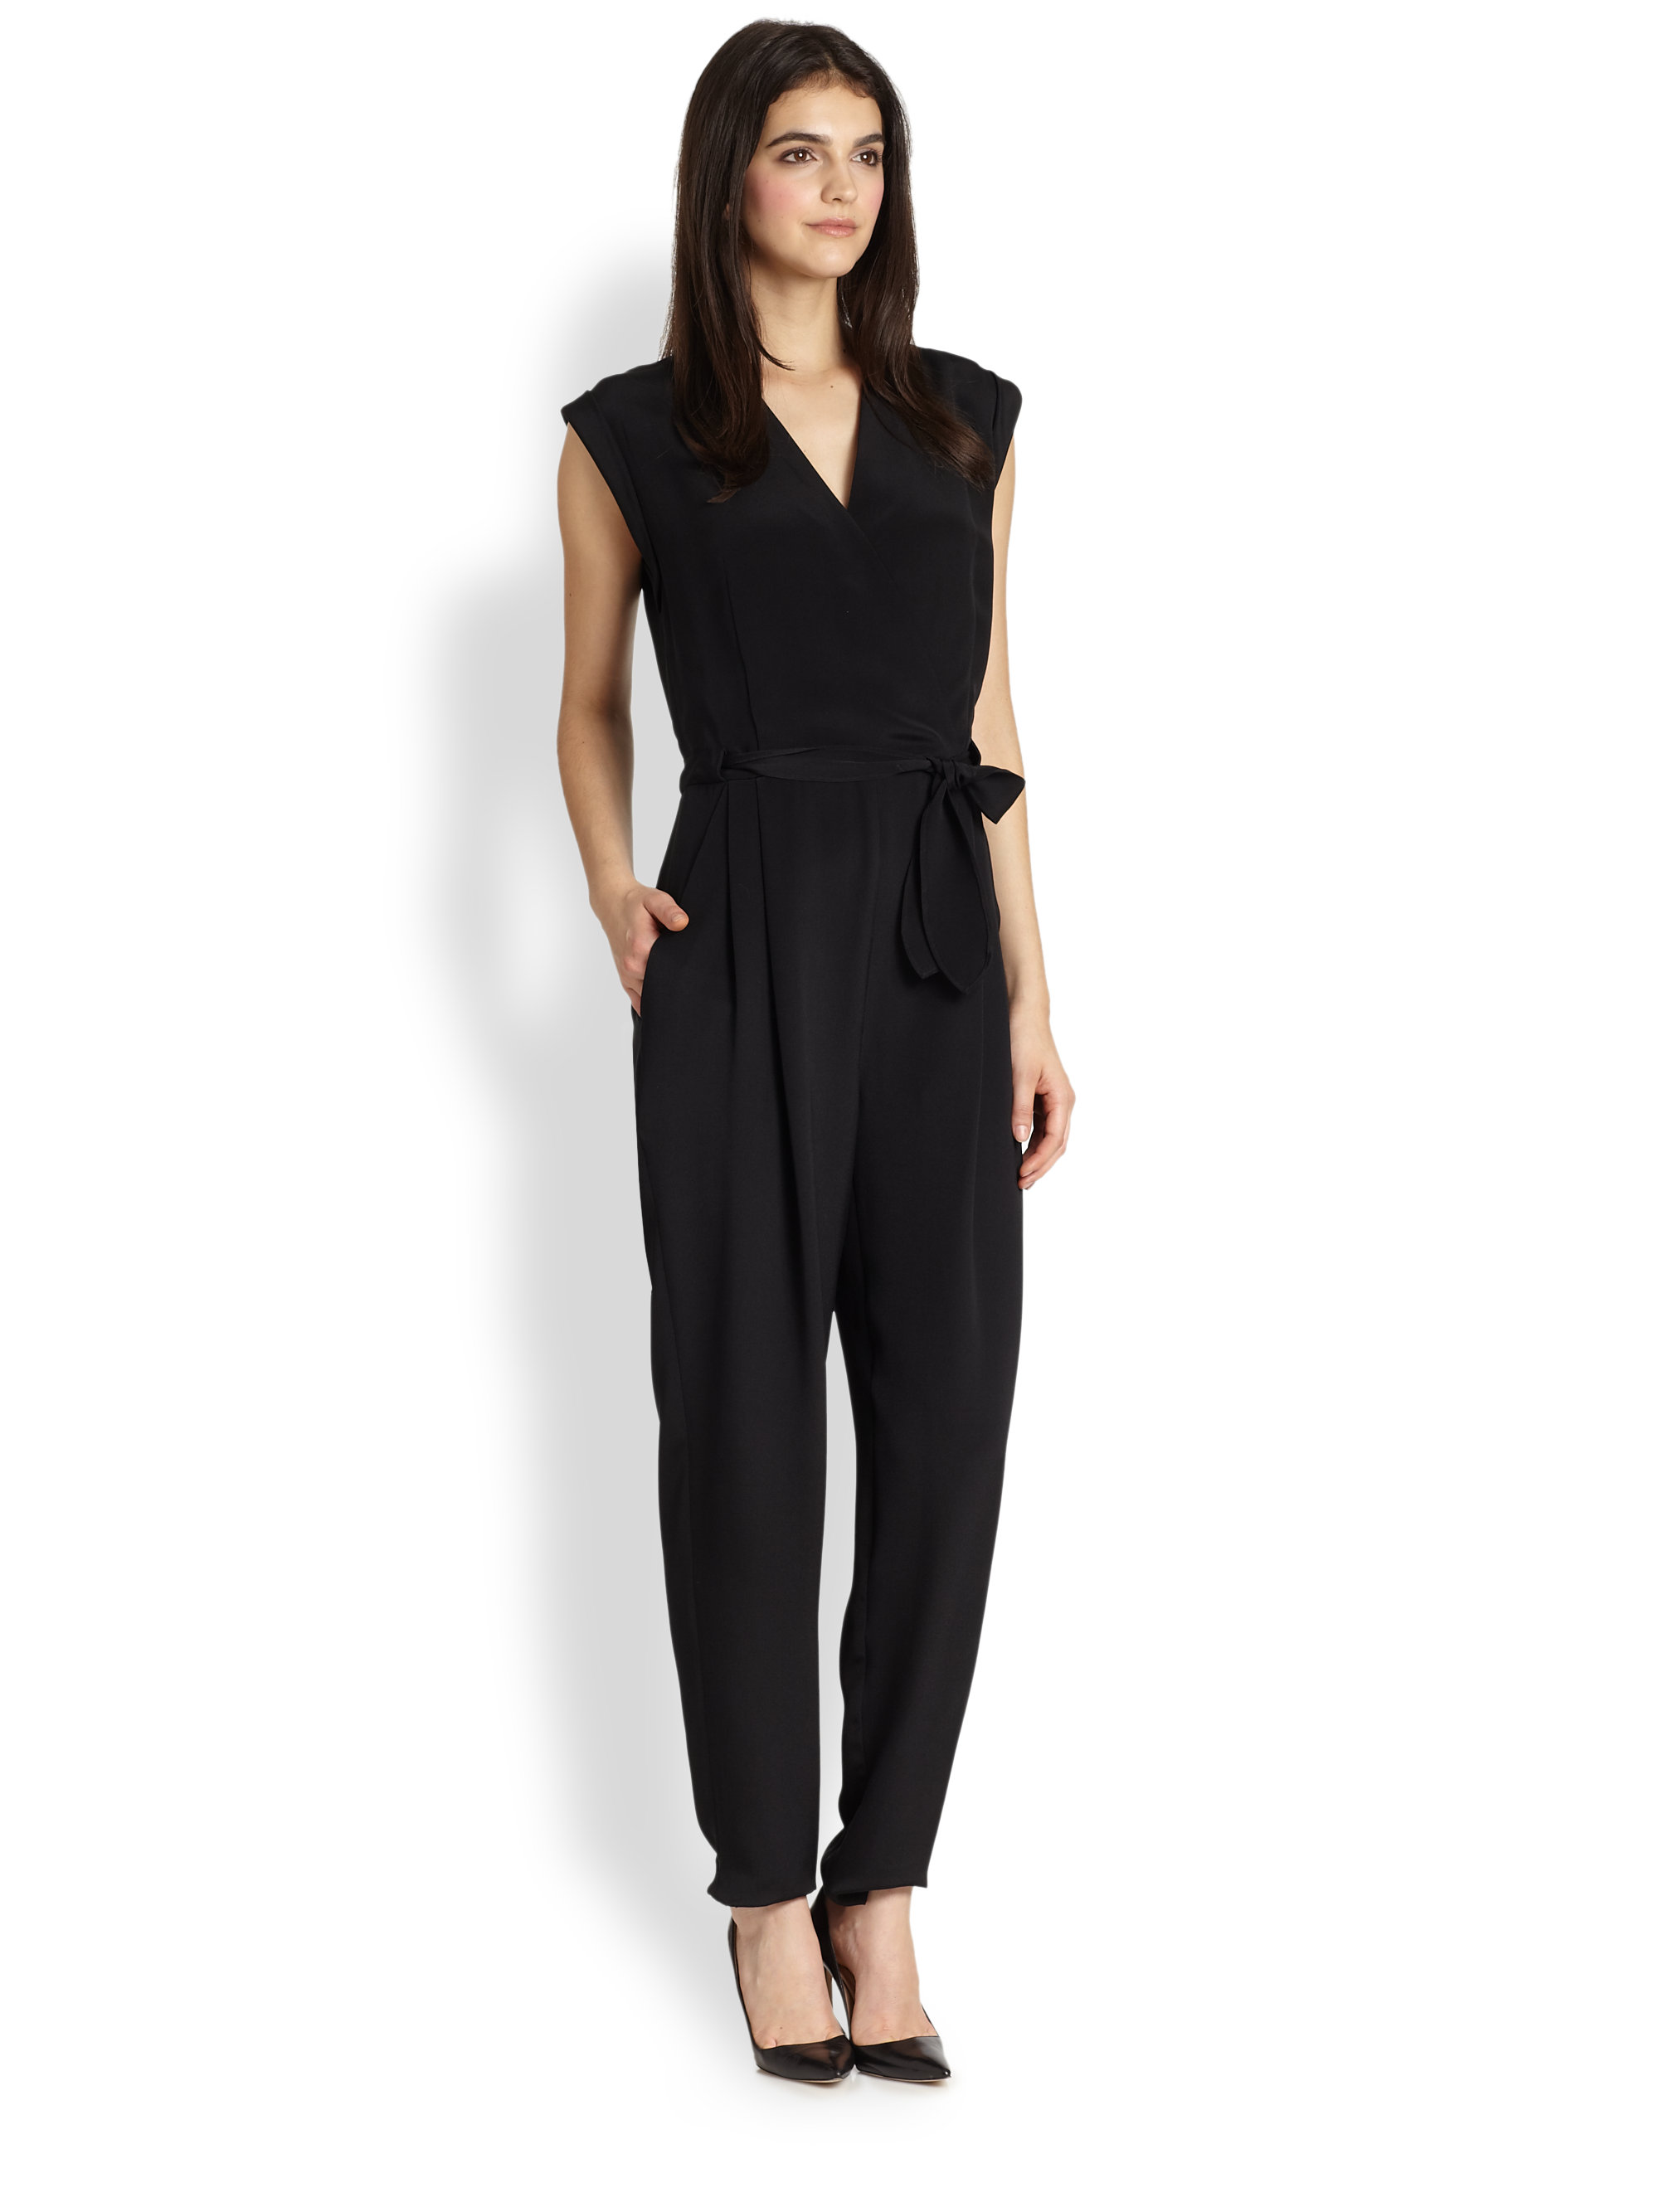 Theory sleeveless wrap jumpsuit Hot Sale Cheap Price Good Selling Cheap Price Clearance With Credit Card Buy Cheap Lowest Price Outlet For Sale vTvBani